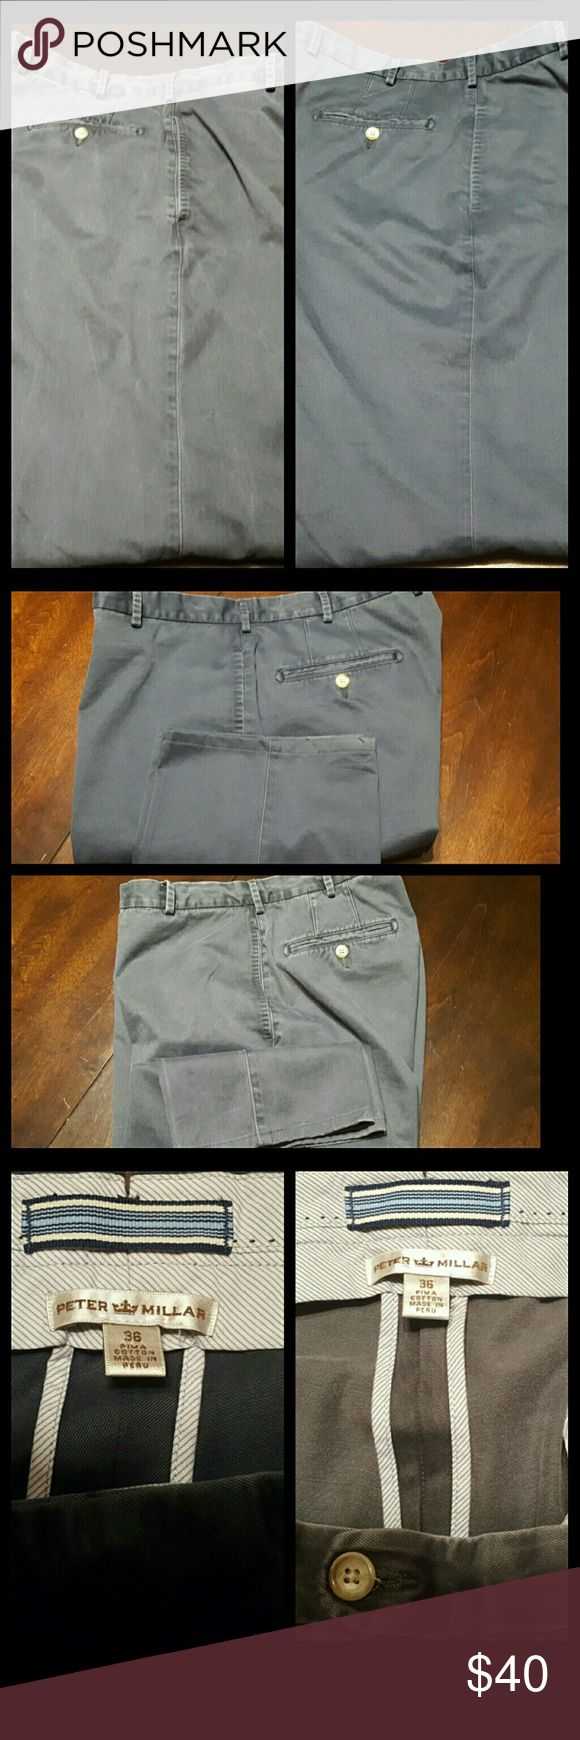 Lot of 2 Peter Millar Khaki Pants Size 36 x 30 Lot of 2 Peter Millar Khaki Pants Size 36 x 30. These pants are in excellent condition with no stains, no tears, etc. These are $145 new in the store. One pair is gray and the other is blue. Very nice pants and I'll ship them within one business day. Cleaning out my inventory so I'm selling everything cheap. Price is FIRM. Peter Millar Pants Chinos & Khakis